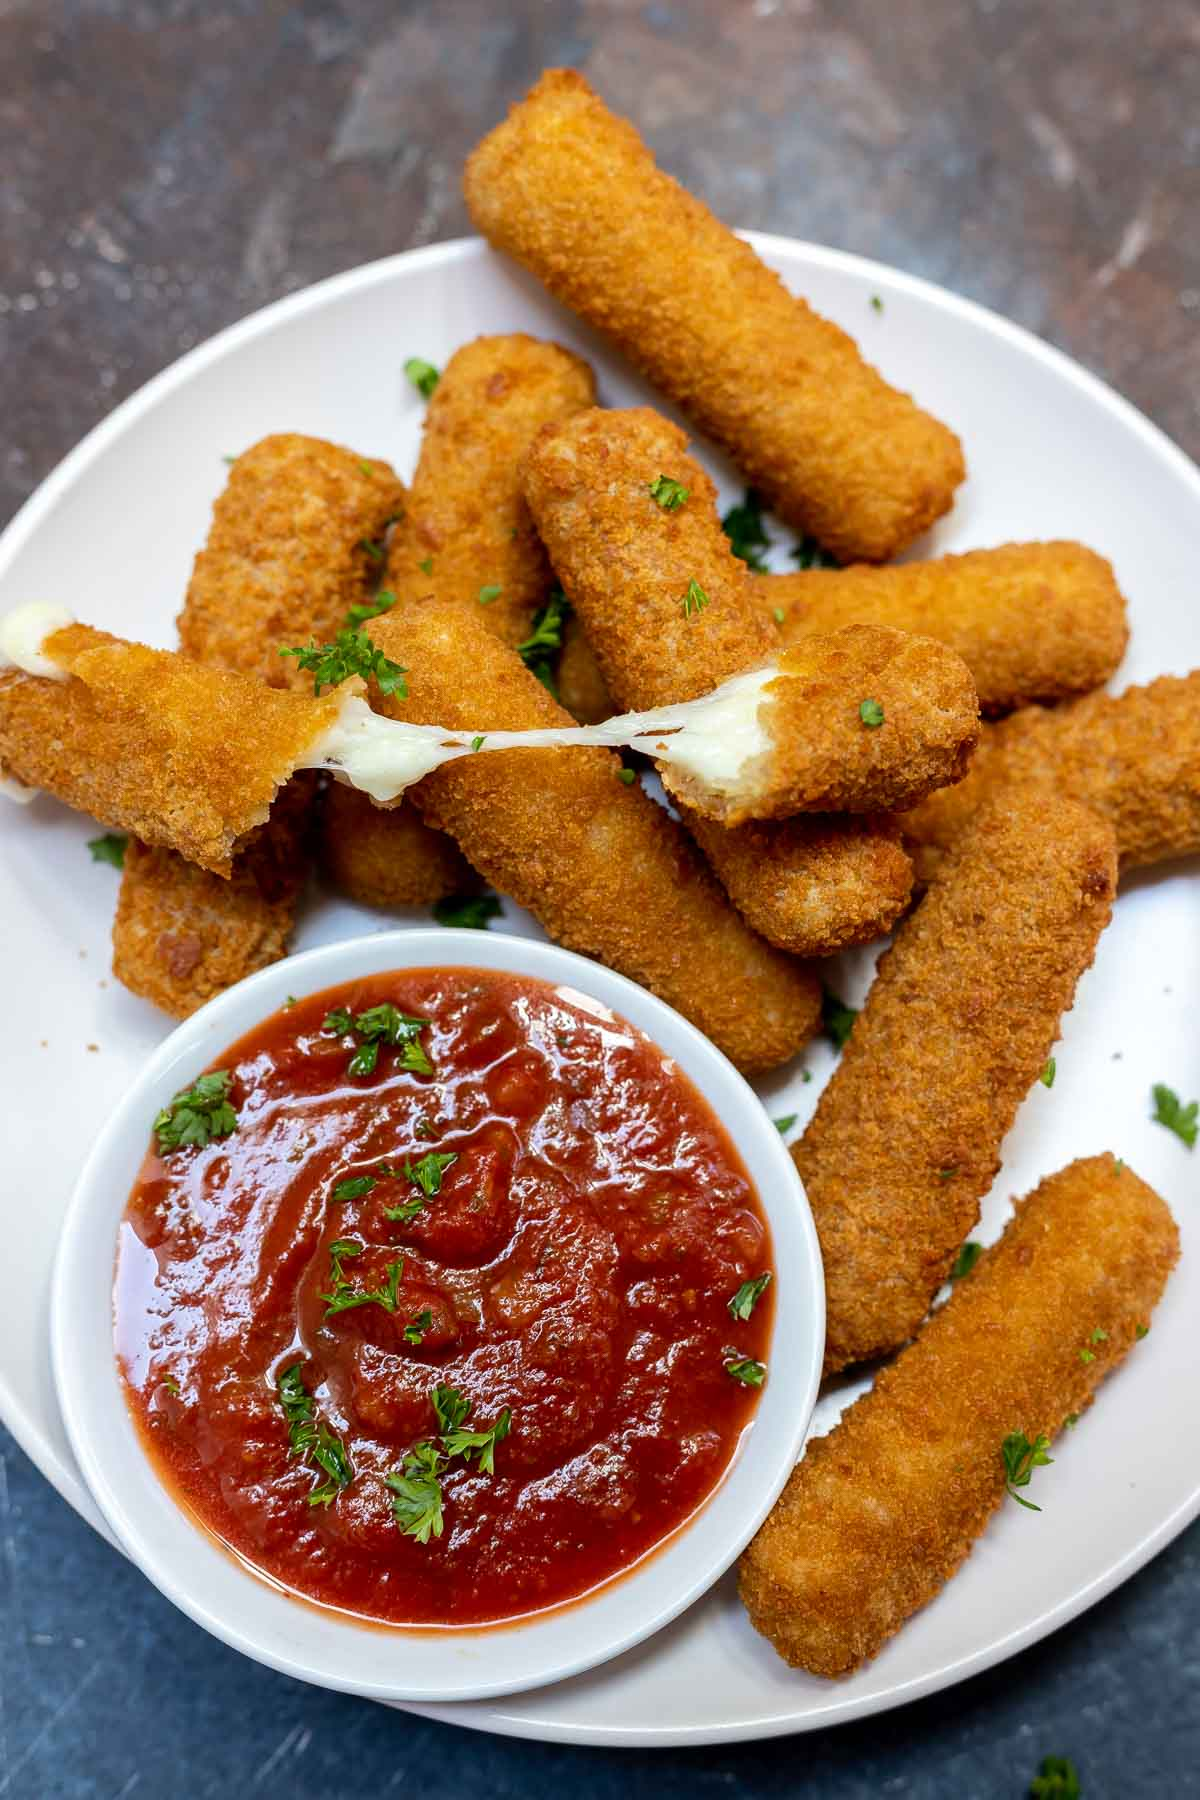 cooked mozzarella sticks on white plate with white bowl of red sauce